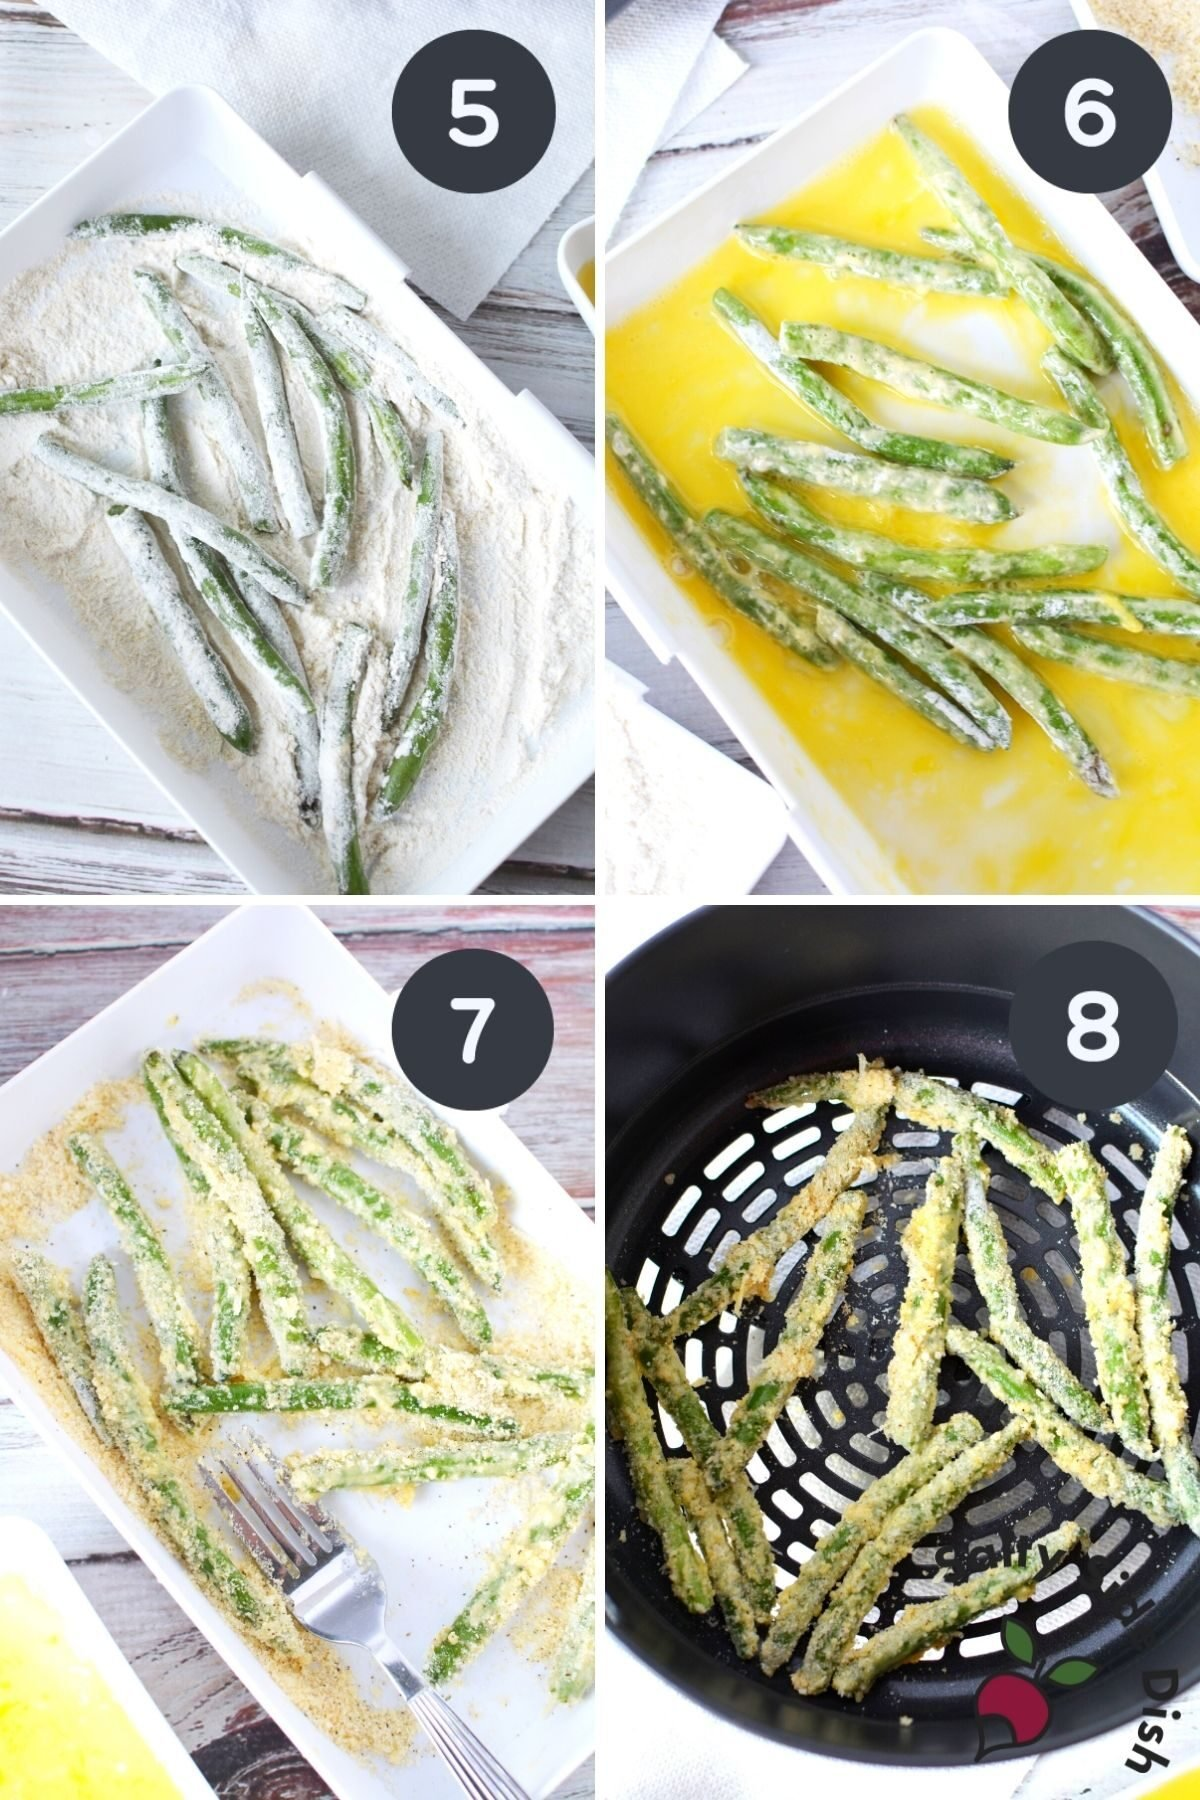 colllage coating green beans in parmesan cheese mixture.